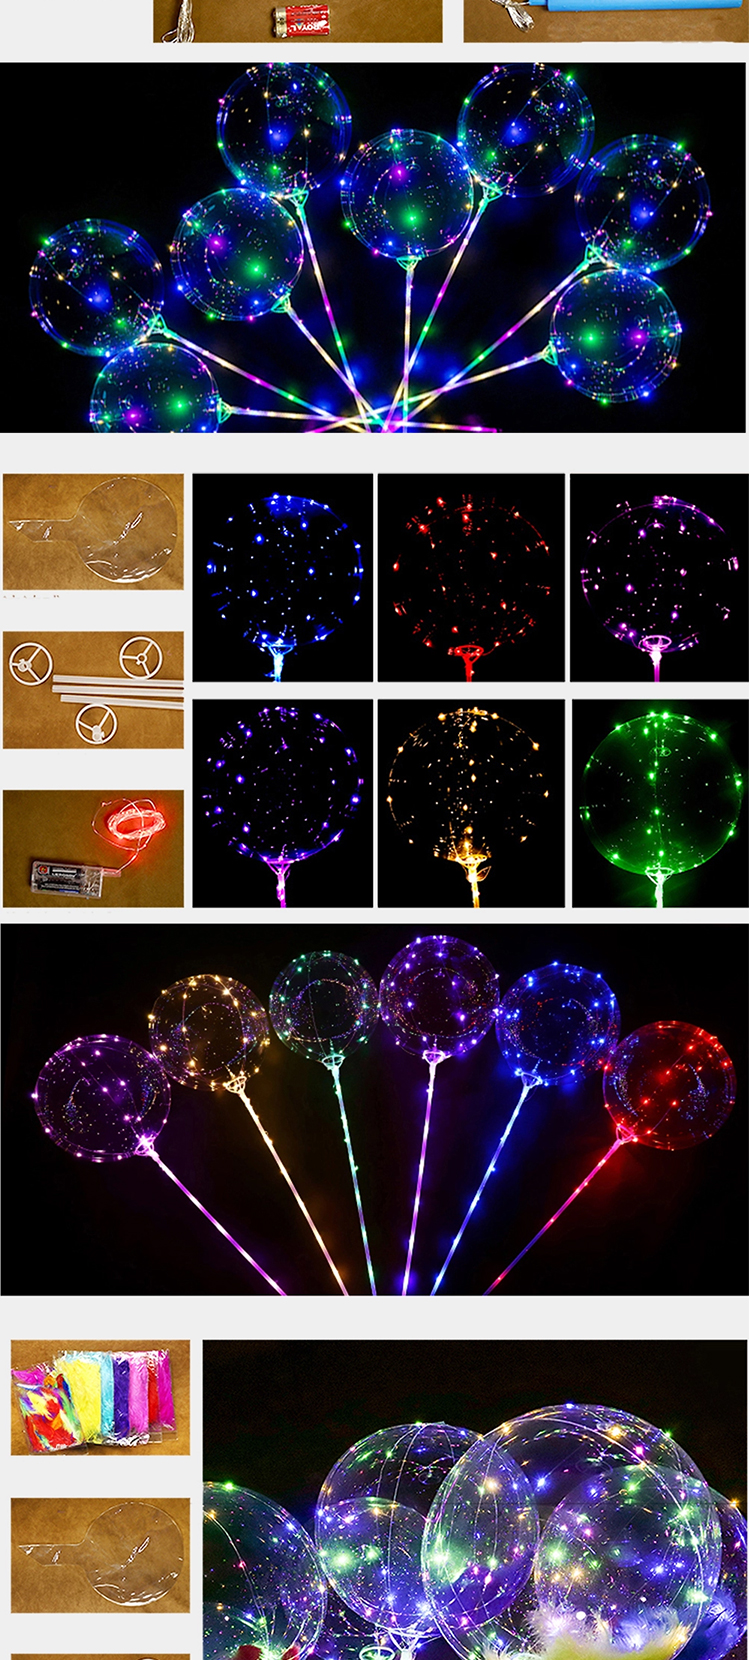 18 inchInflatable Multi Kleur Lights String Ronde Helium Ballonnen Outdoor Party Knipperende LED Bobo ballonnen Voor Kerst